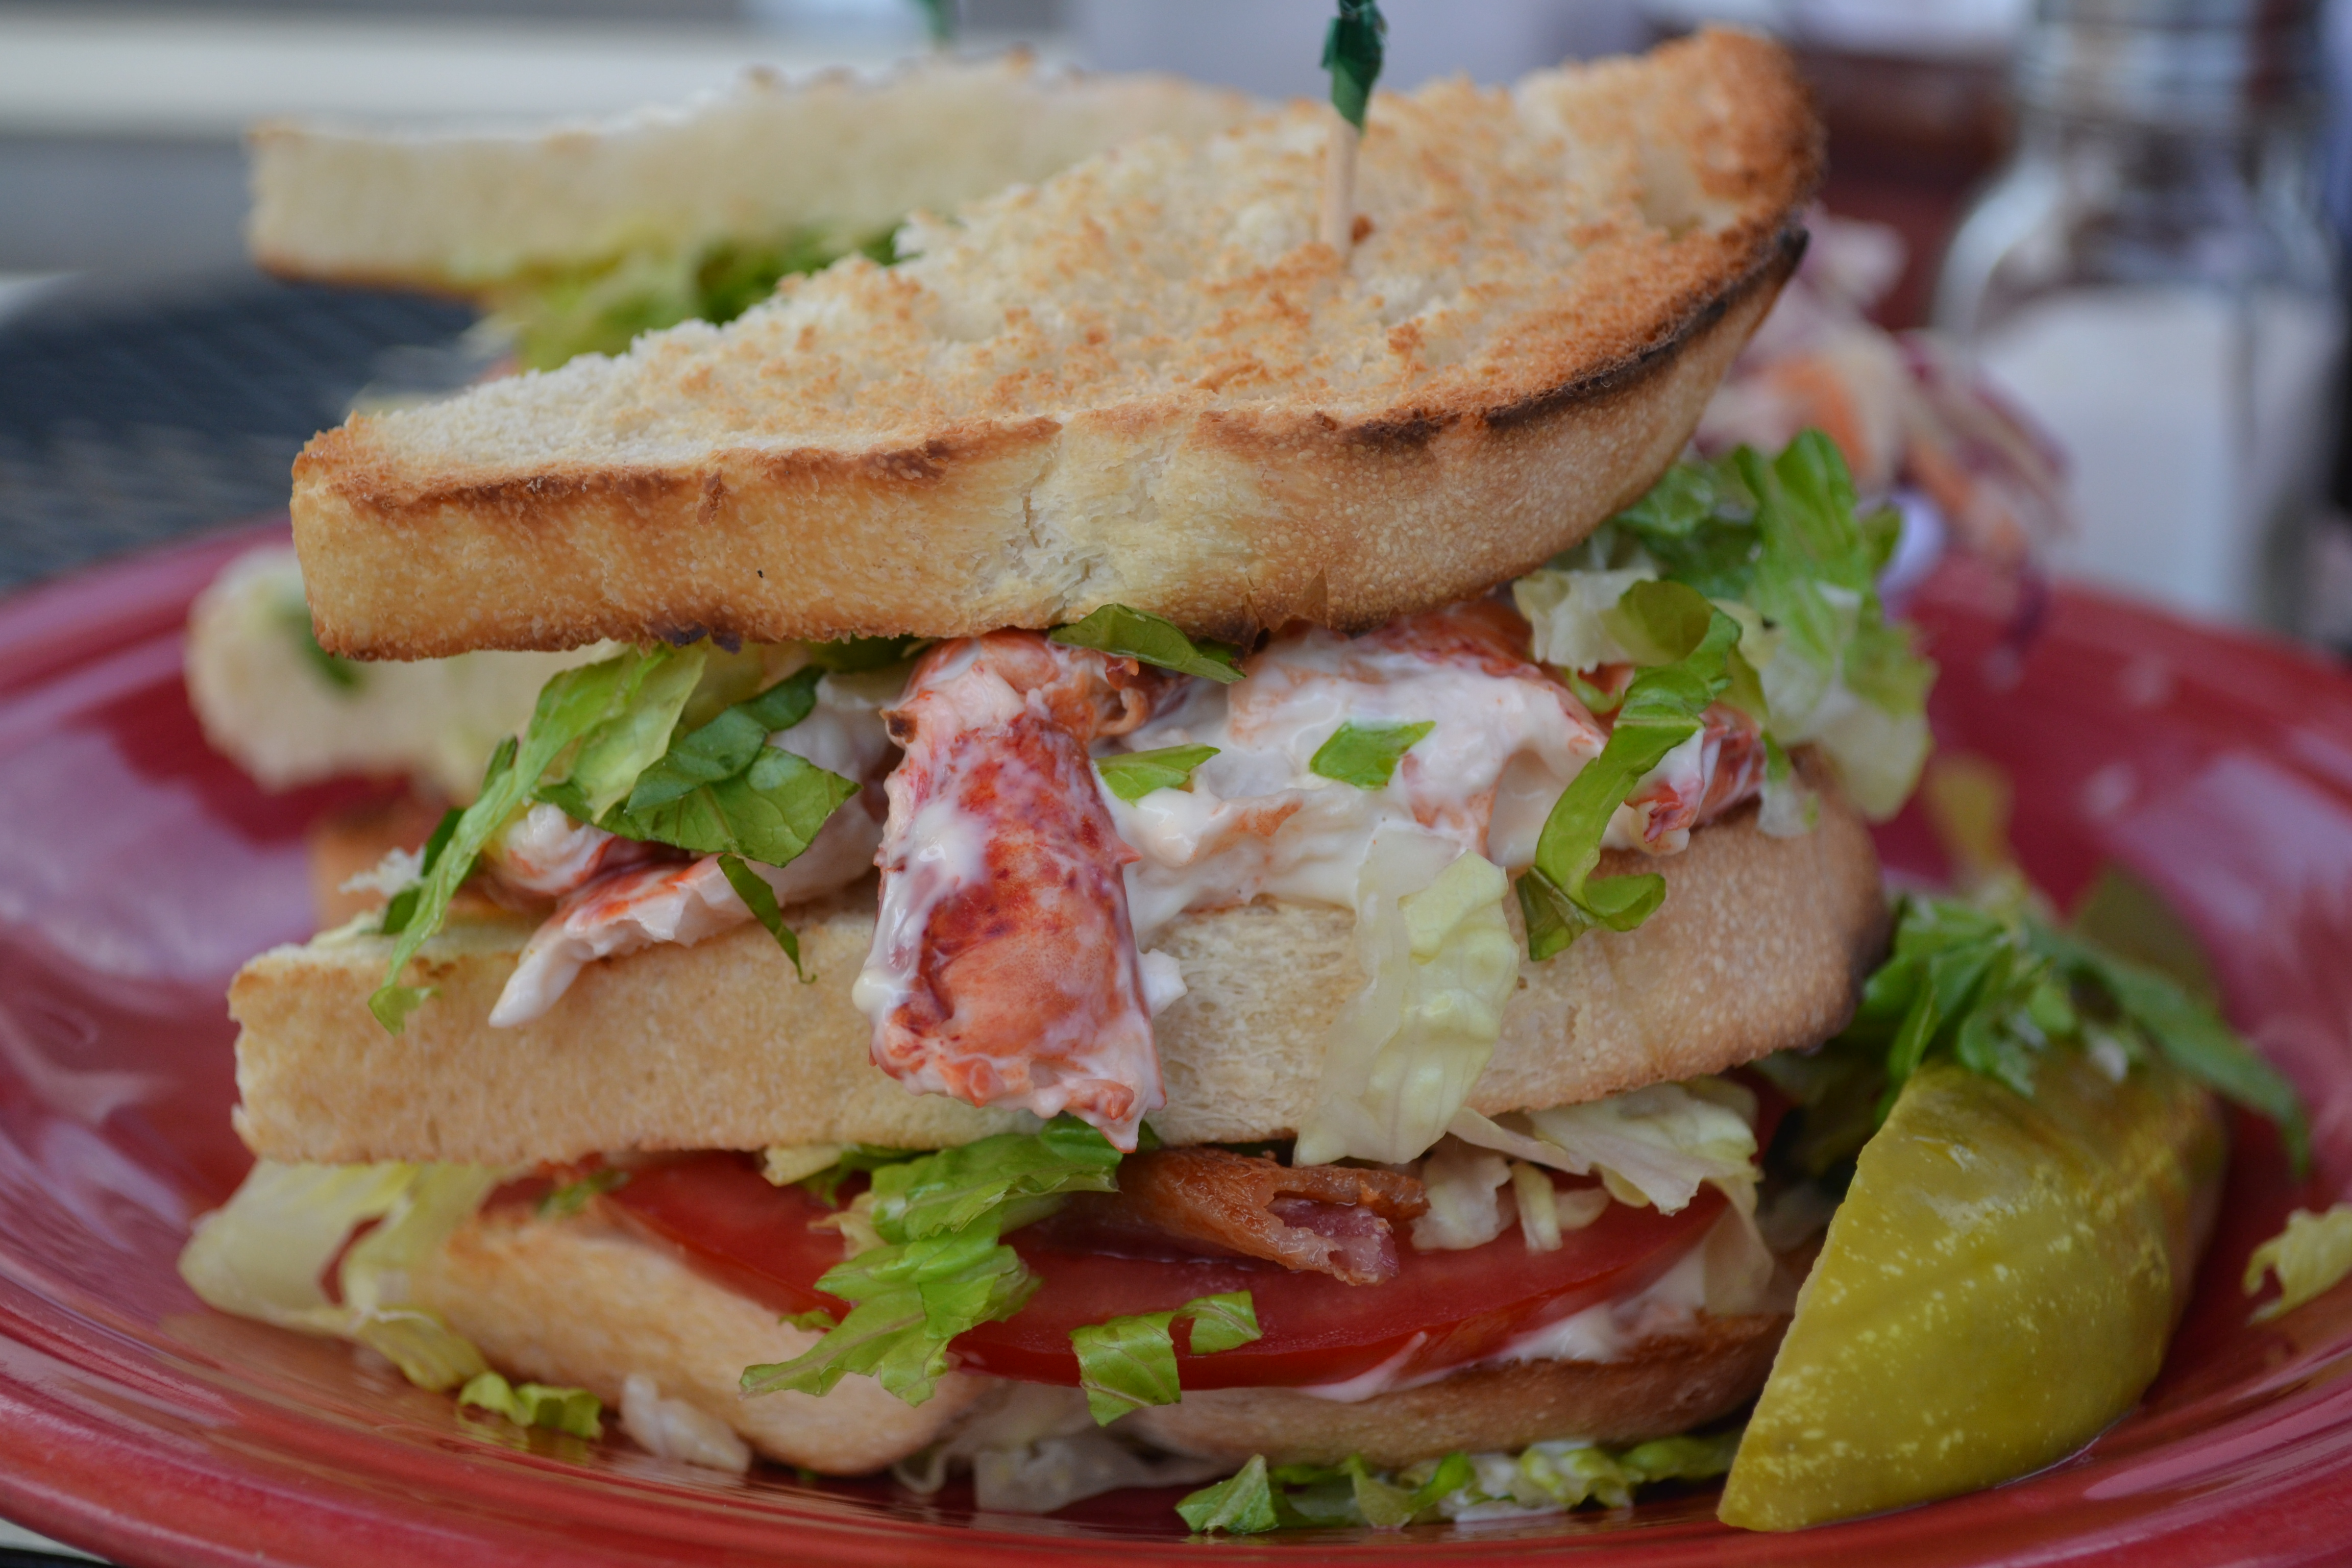 food punk » Home Kitchen Cafe: Home of the Clawed Father Lobster ...